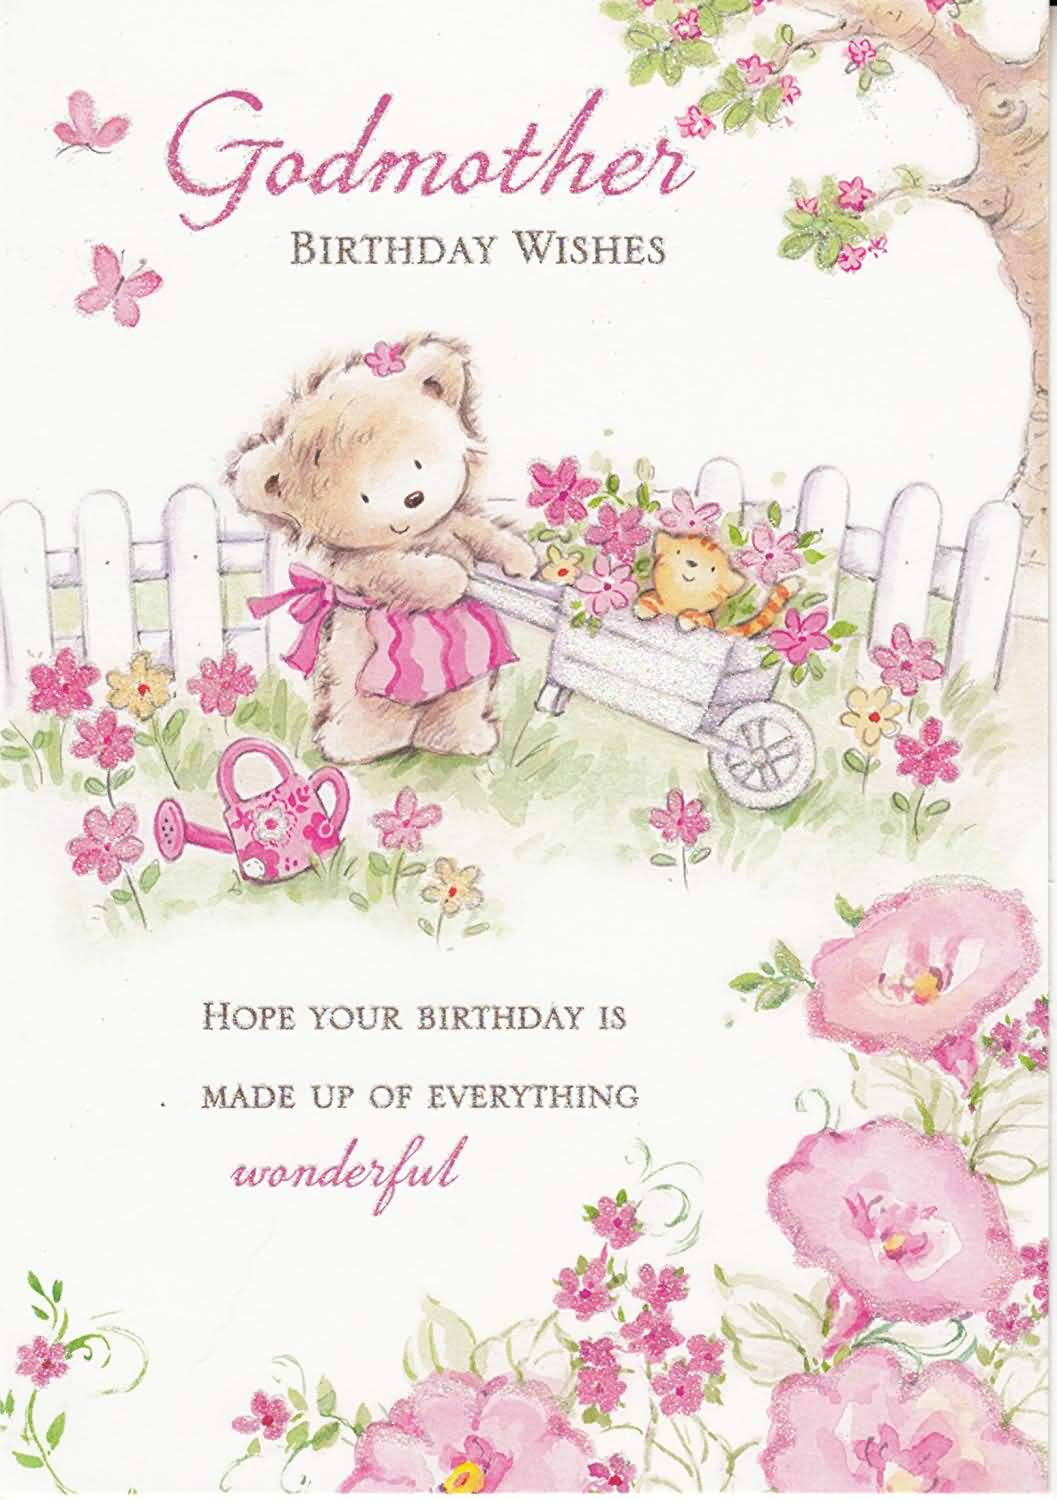 Godmother birthday wishes with hope your birthday is wonderful